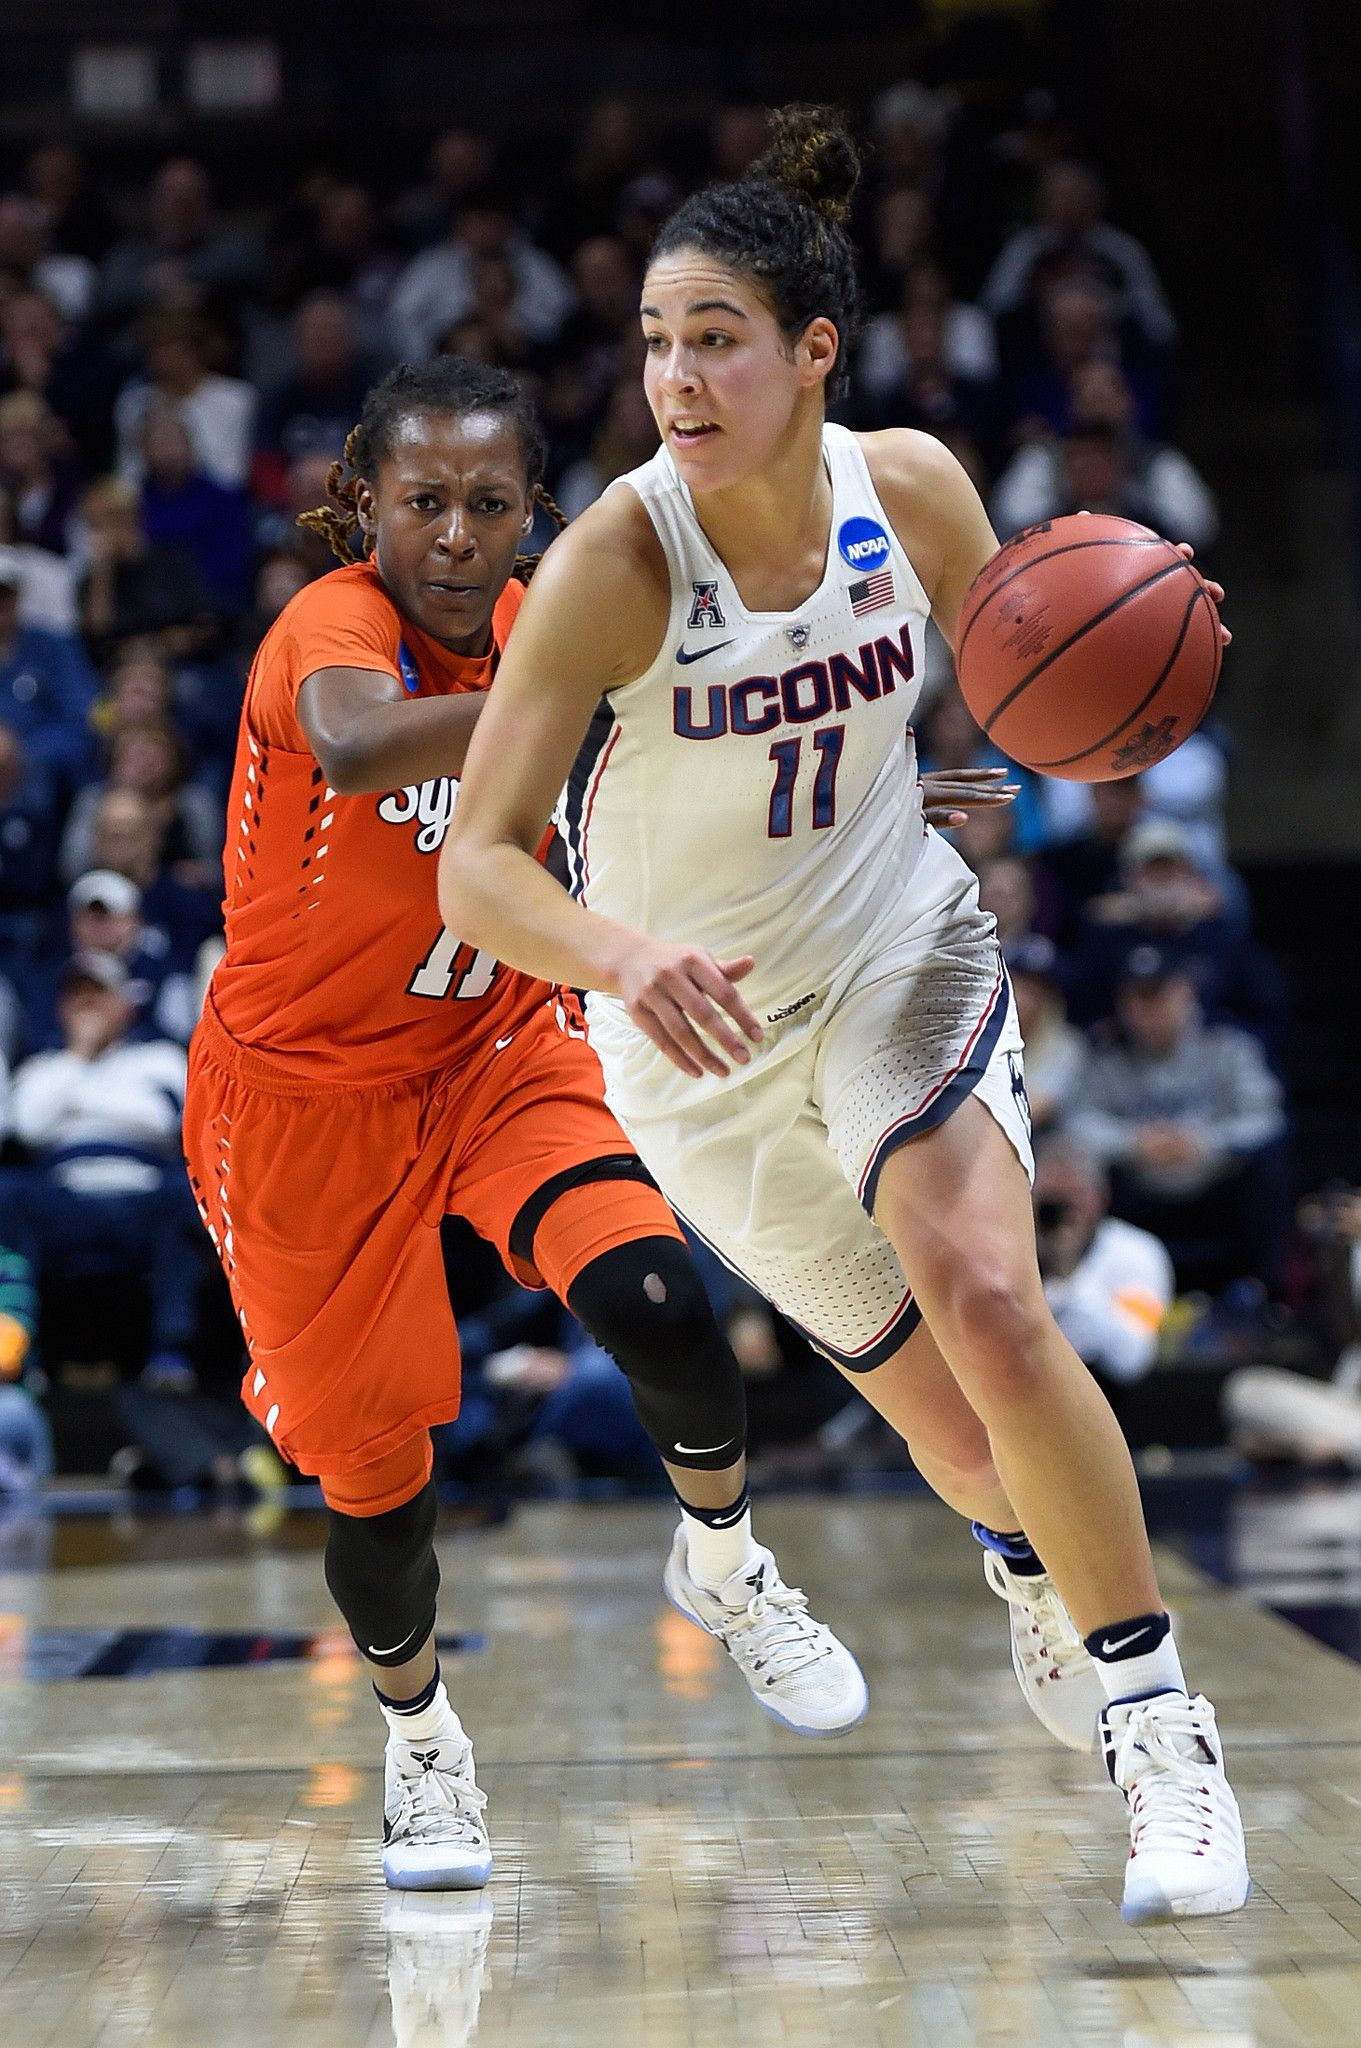 UConn Women Vs. Syracuse In NCAA Tournament (With images